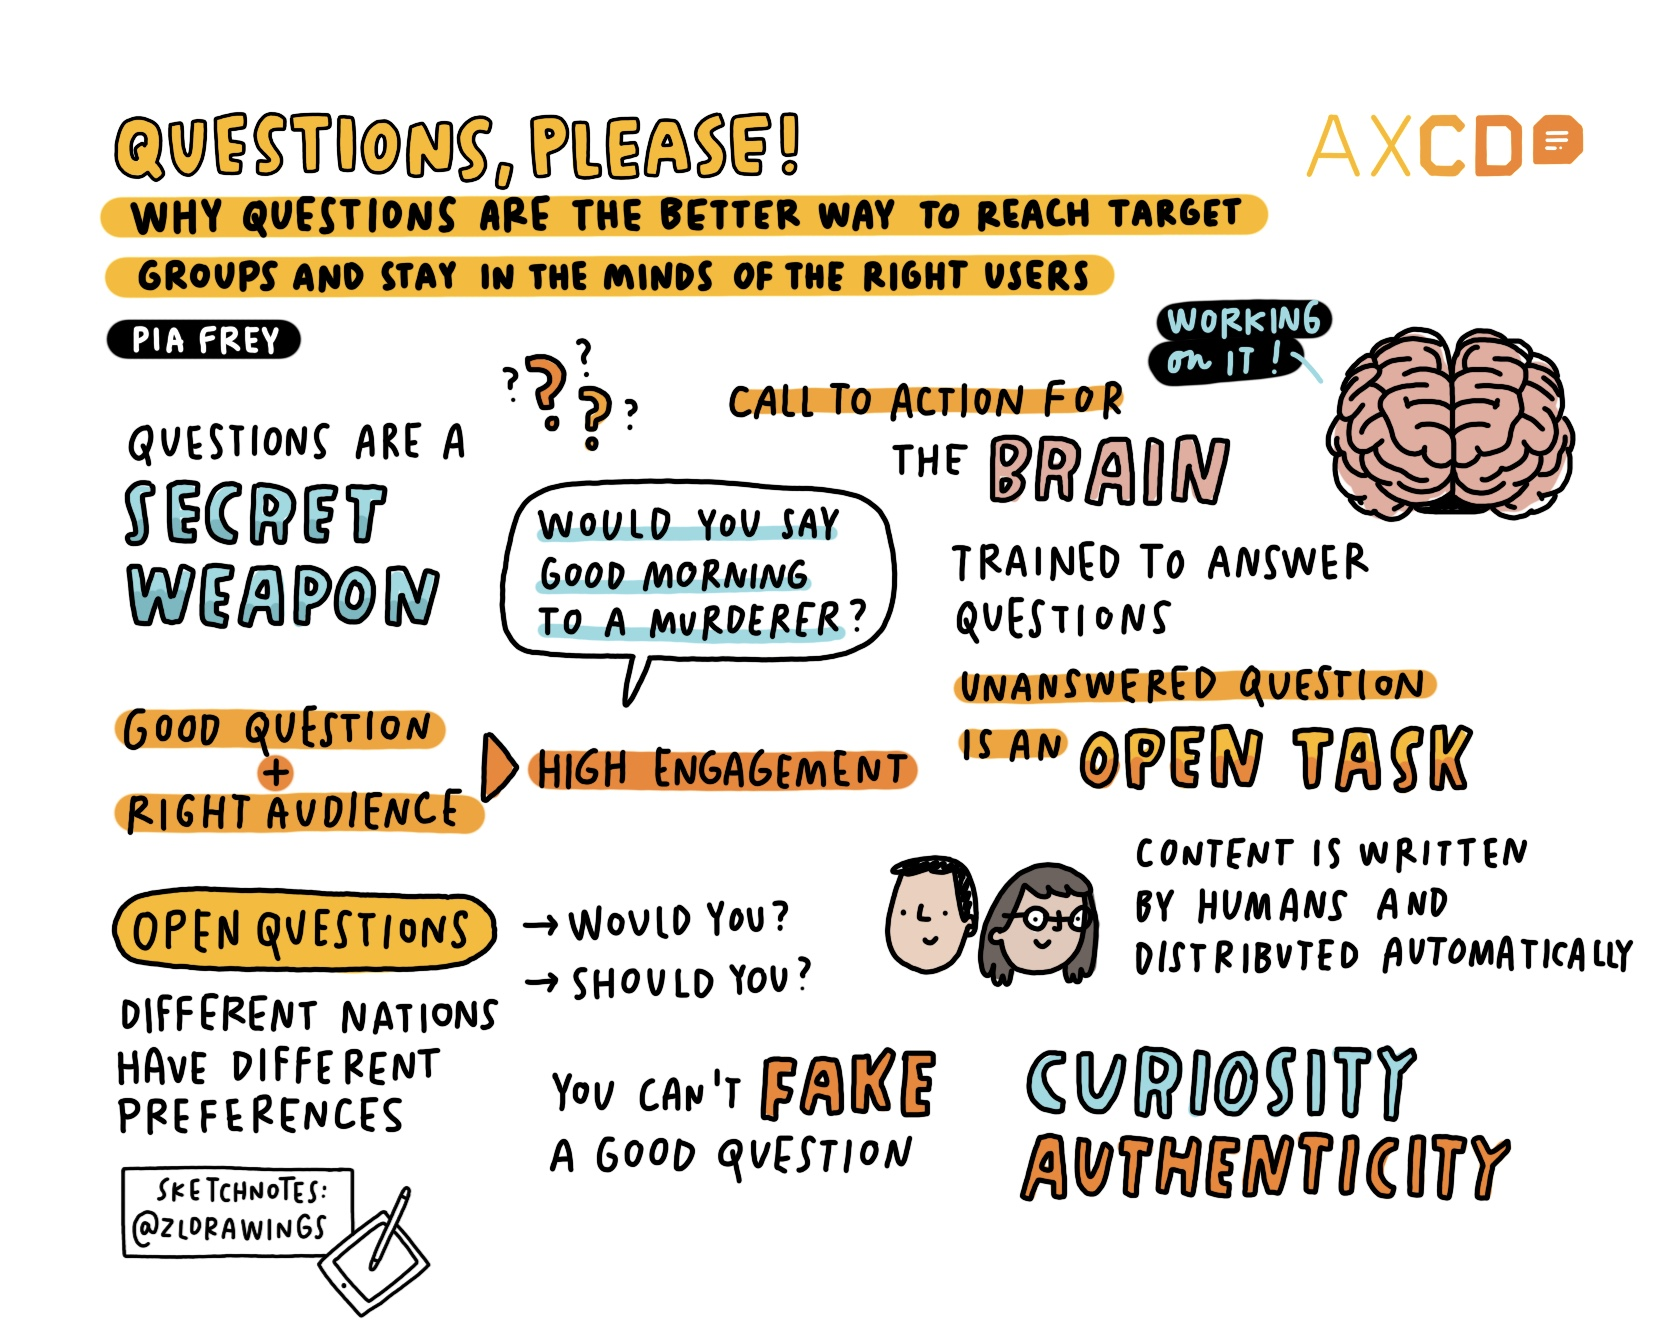 Sketchnote AXCD Talk: Questions are better way to reach target groups and stay in minds of right users